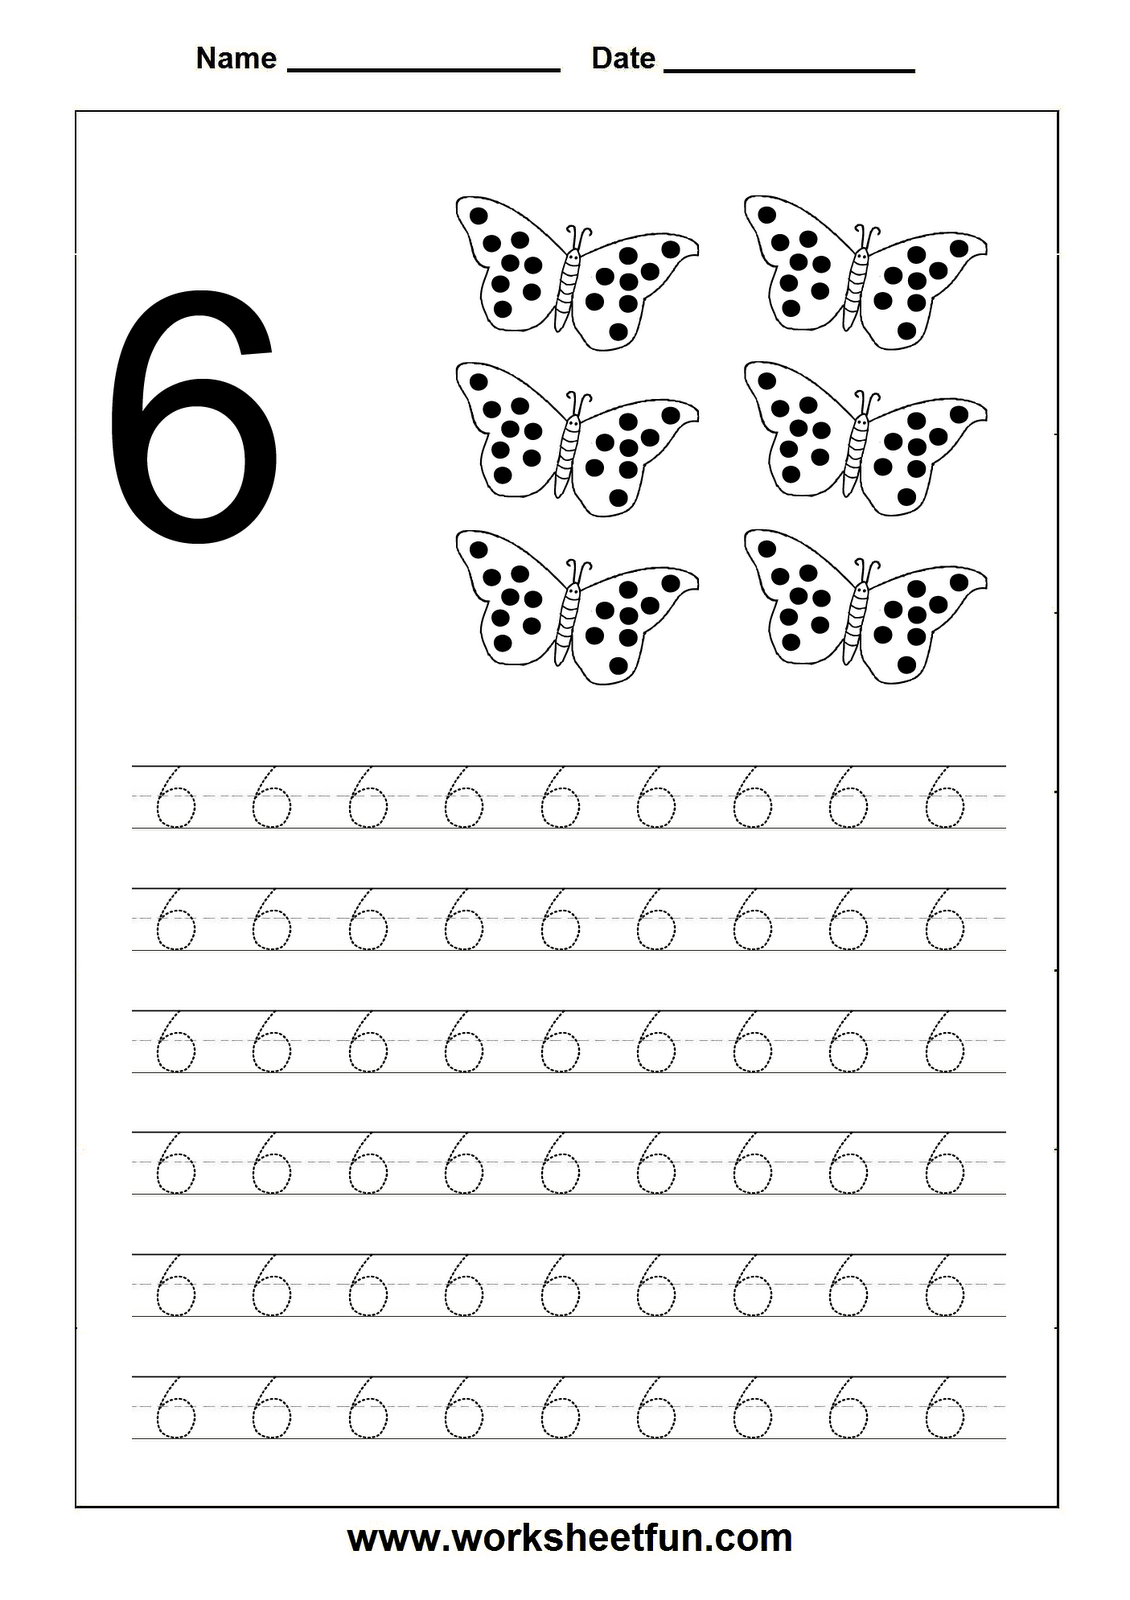 List Of Synonyms And Antonyms Of The Word Number Tracing Pre K Worksheets